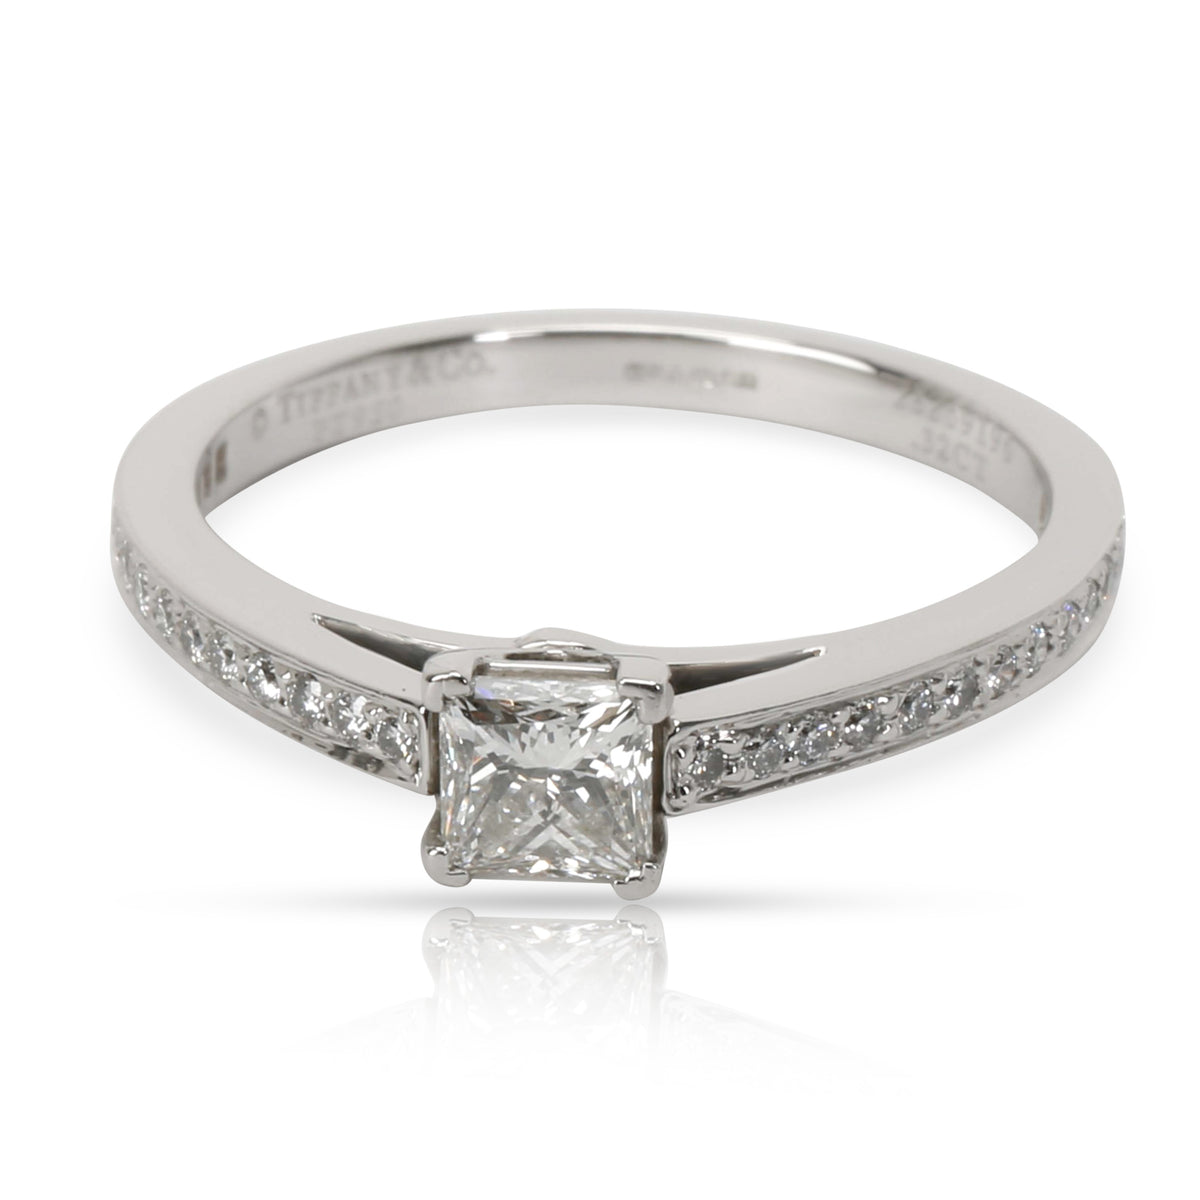 Tiffany & Co. Grace Diamond Engagement Ring in  Platinum F VVS1 0.46 CTW